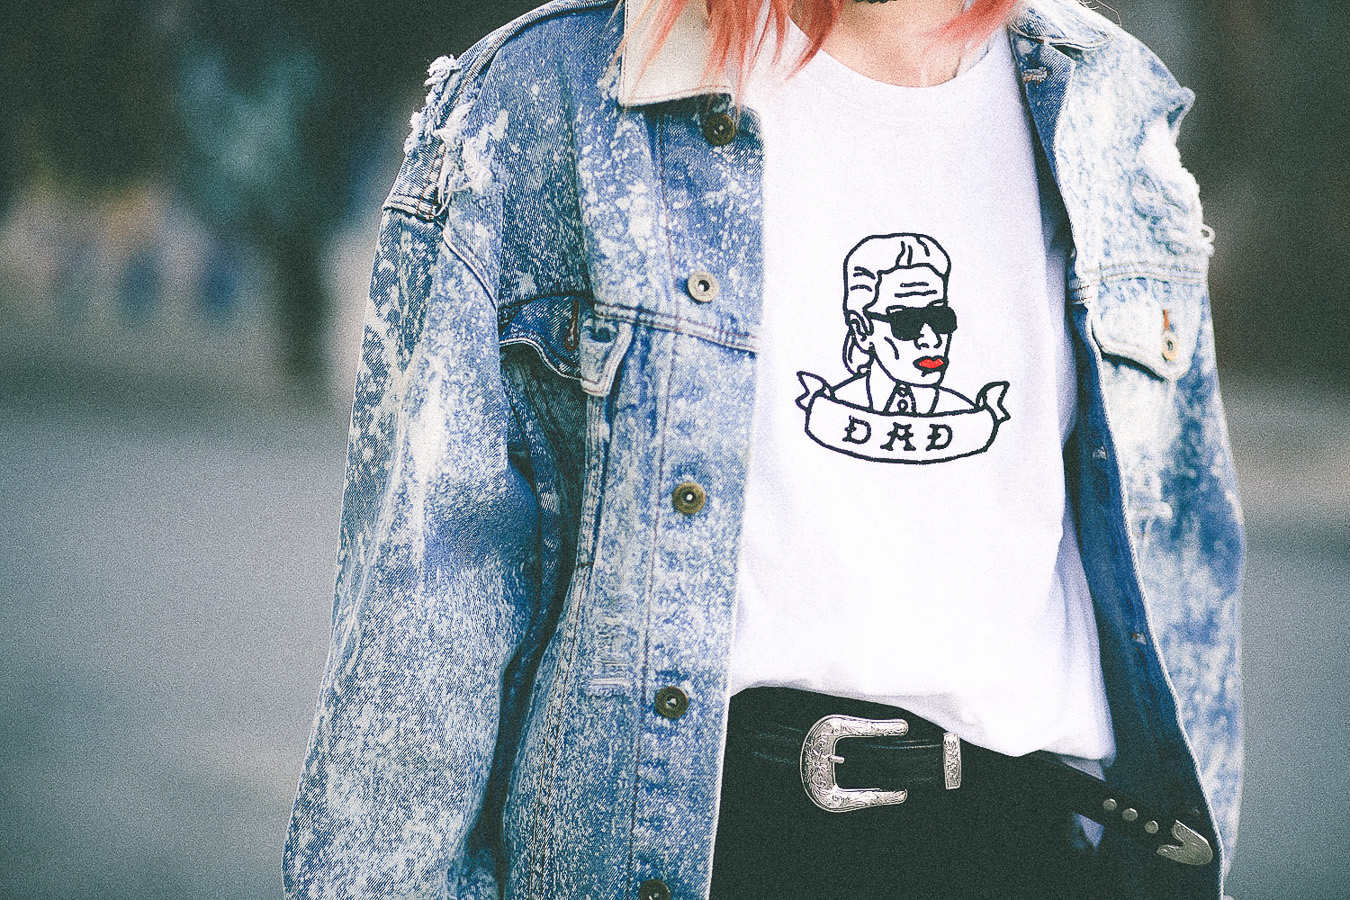 Le Happy wearing vintage denim jacket and white graphic tee